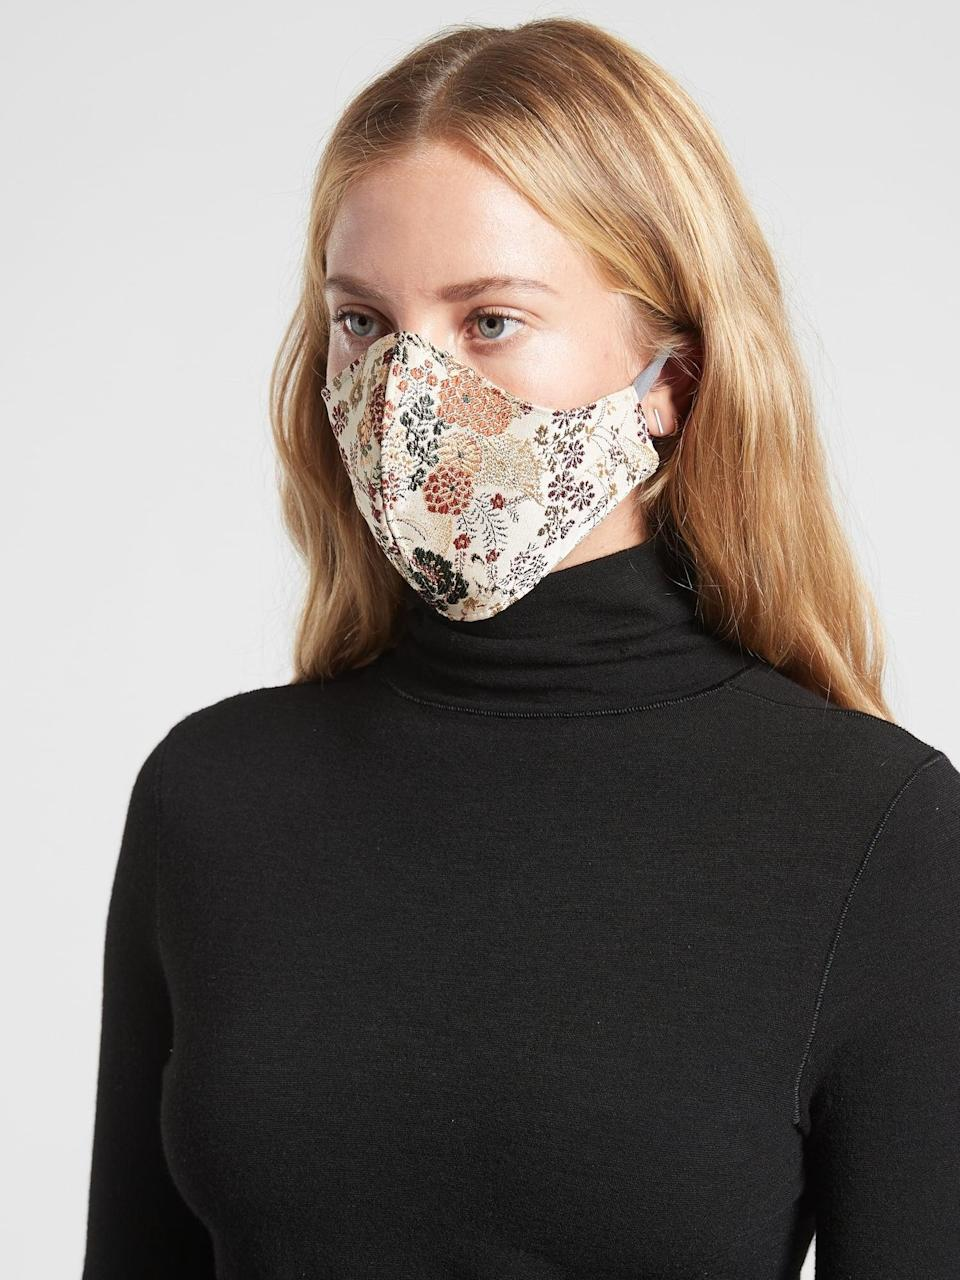 <p>The limited-edition <span>Athleta Silk Mask by VPL</span> ($49) is a great stocking stuffer. What makes it even better is that through Jan. 31, 2021, Athleta is donating 100 percent of net proceeds (up to $300,000) from the sale of VPL's nonmedical, adult masks to Fashion Girls for Humanity, a women-founded nonprofit helping communities affected by the COVID-19 pandemic.</p>